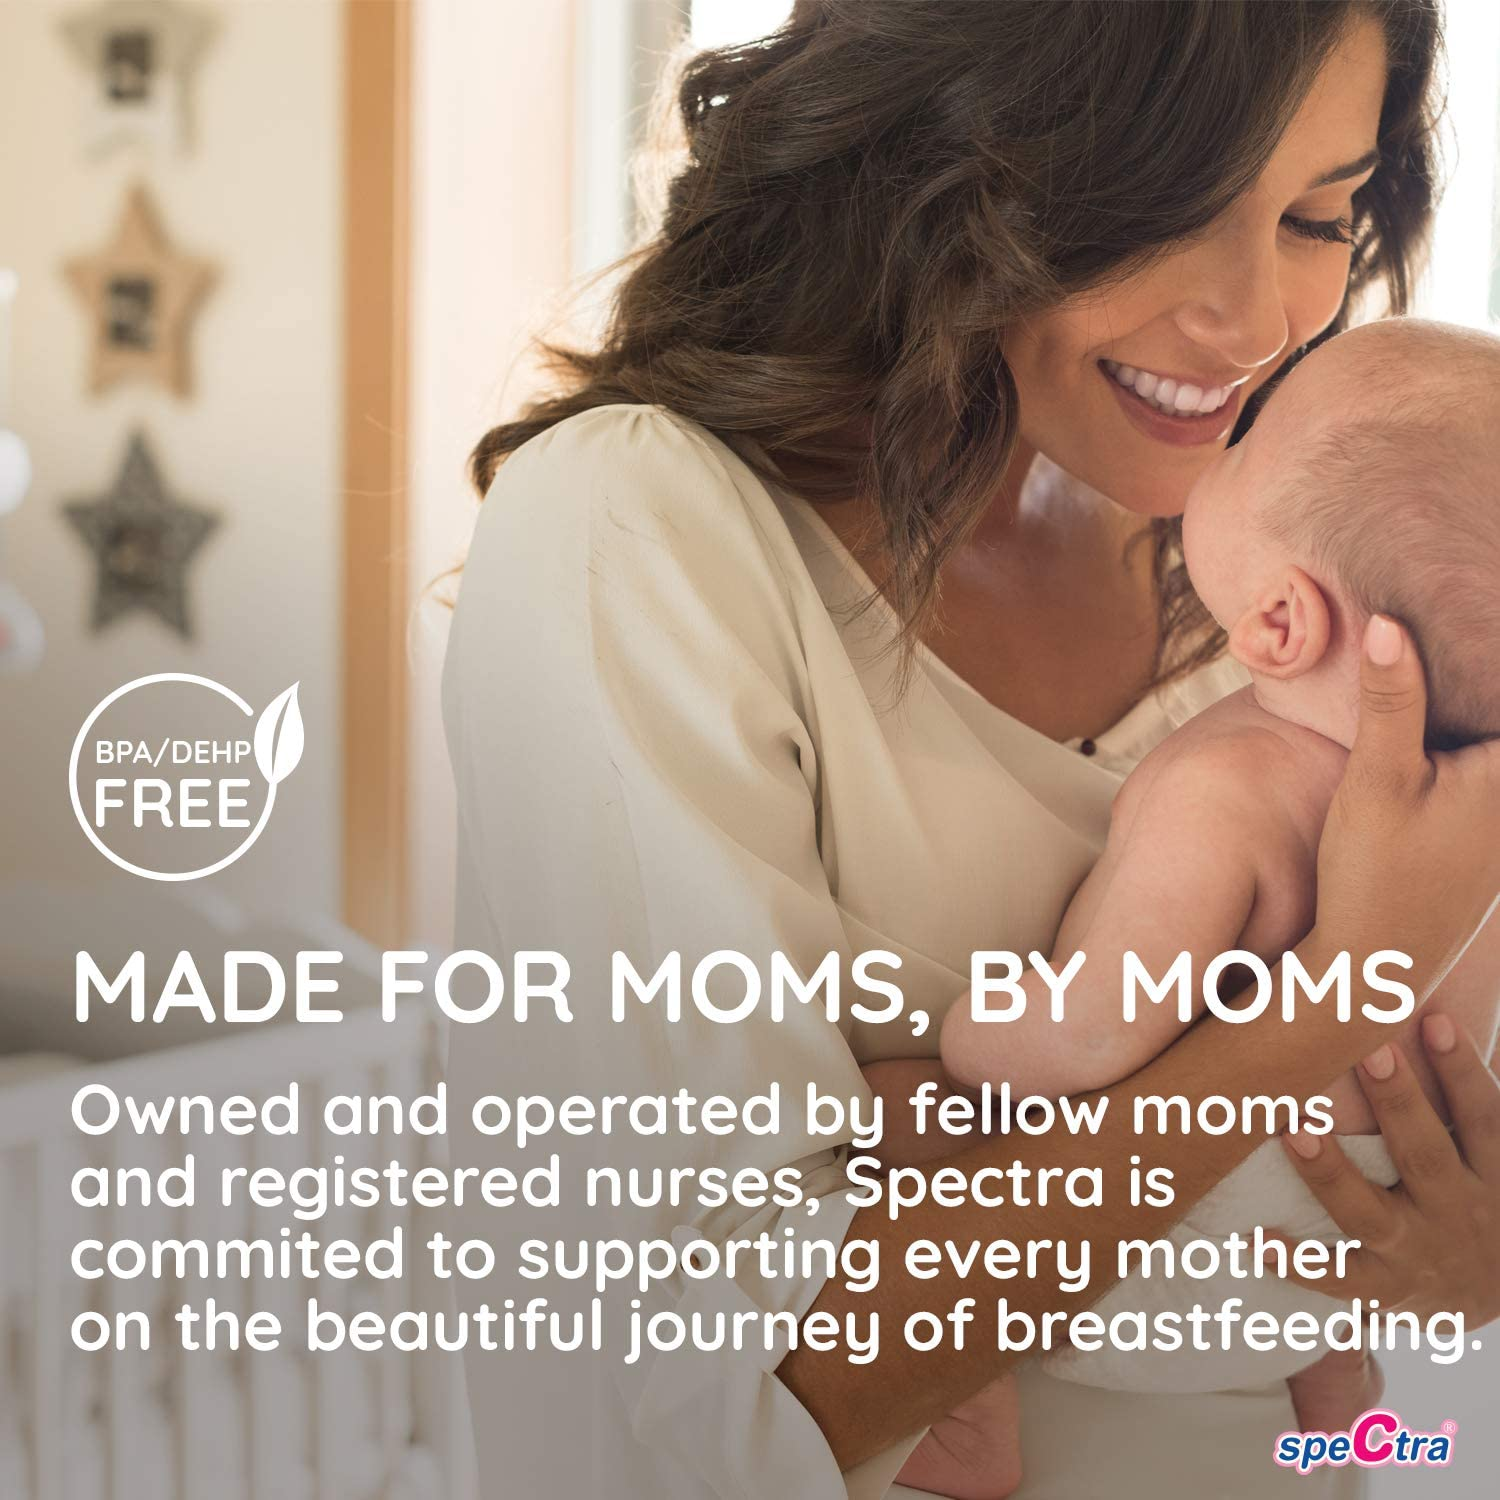 https://healthcaredme.com/product/spectra-baby-9plus-electric-breast-pump/